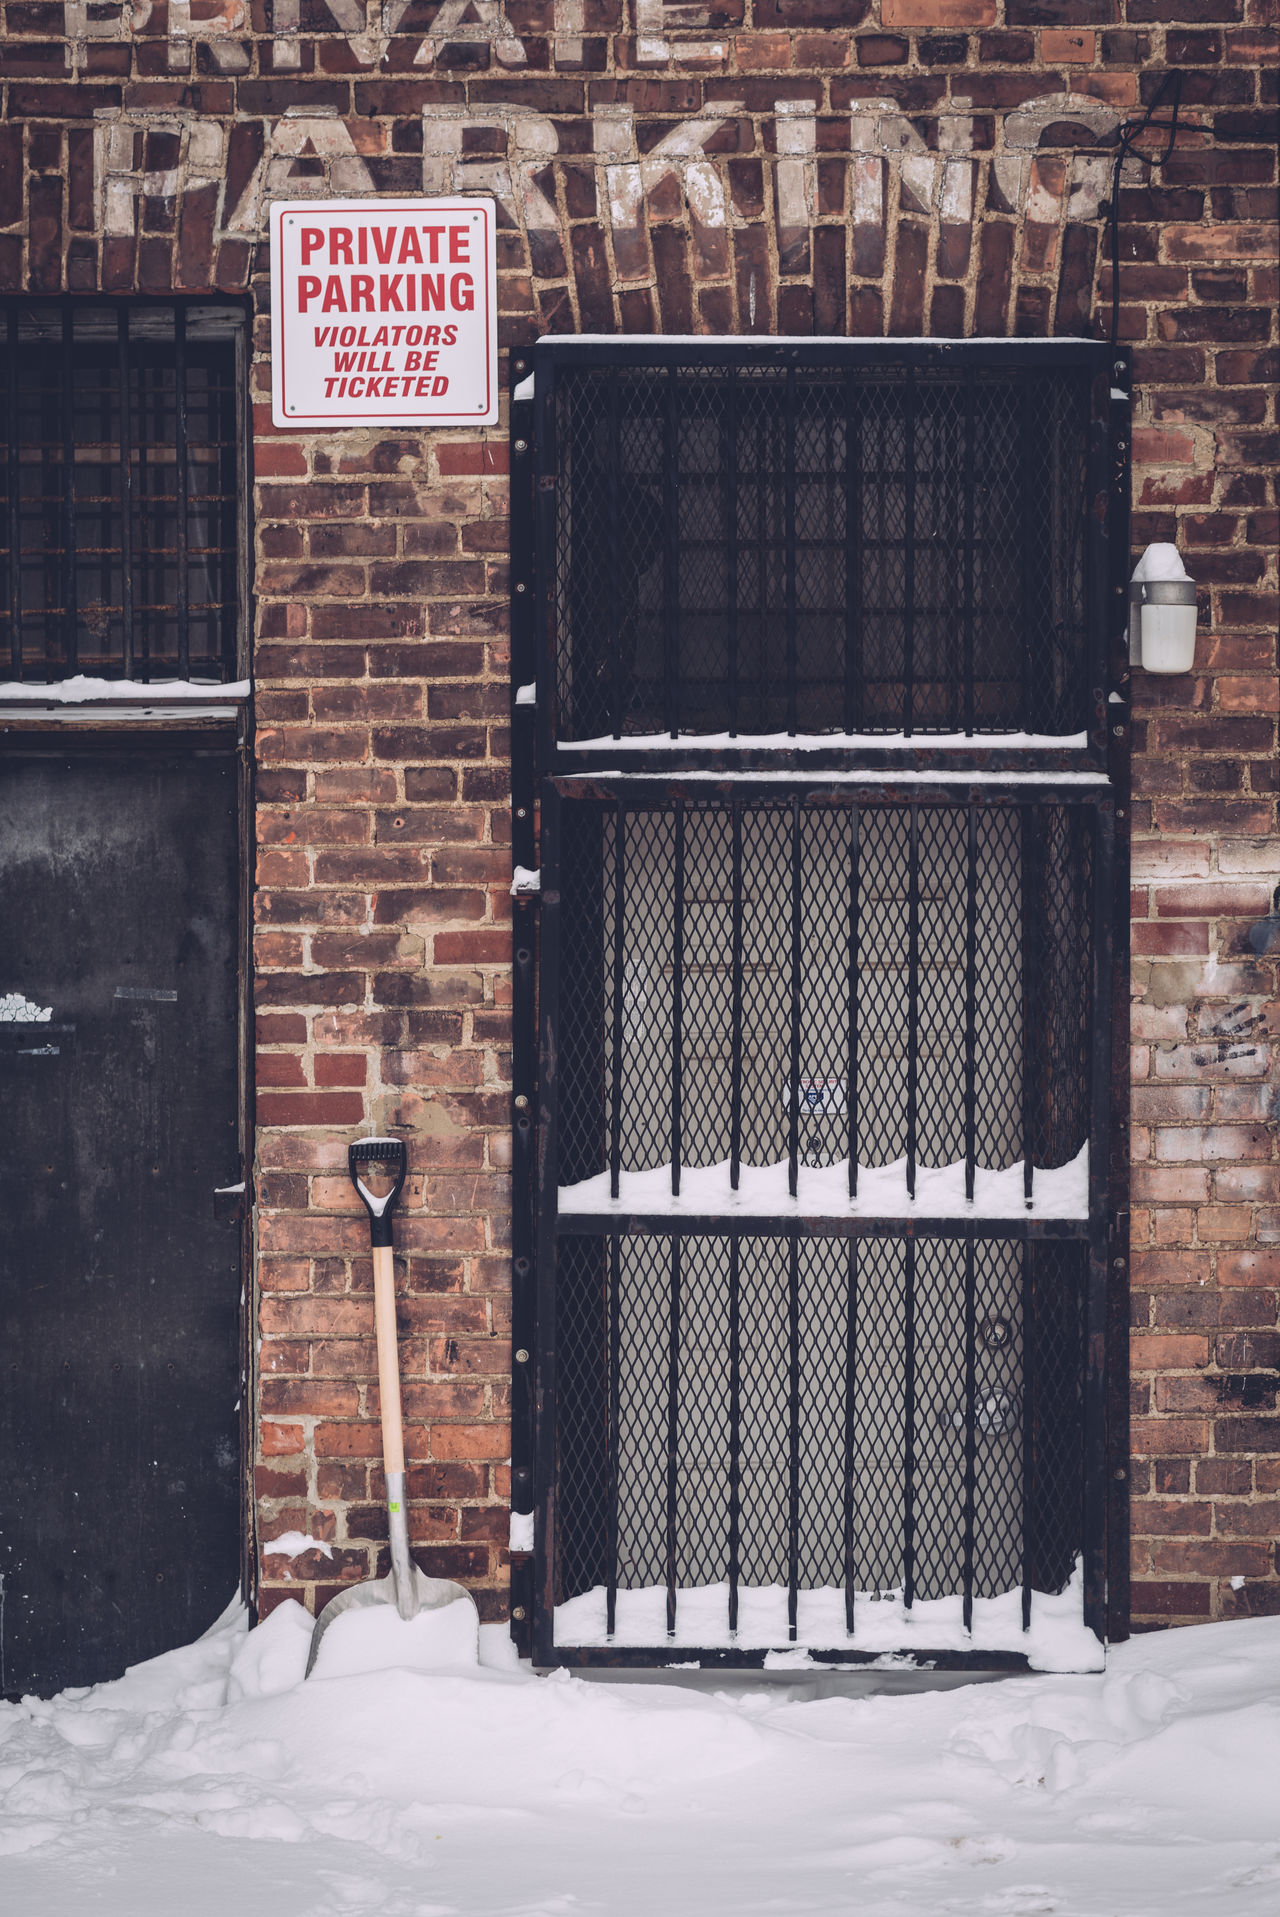 Back Door Back Entrance Built Structure Caged Door Day No People Outdoors Private Parking Area Shovel Snow Text Winter Days